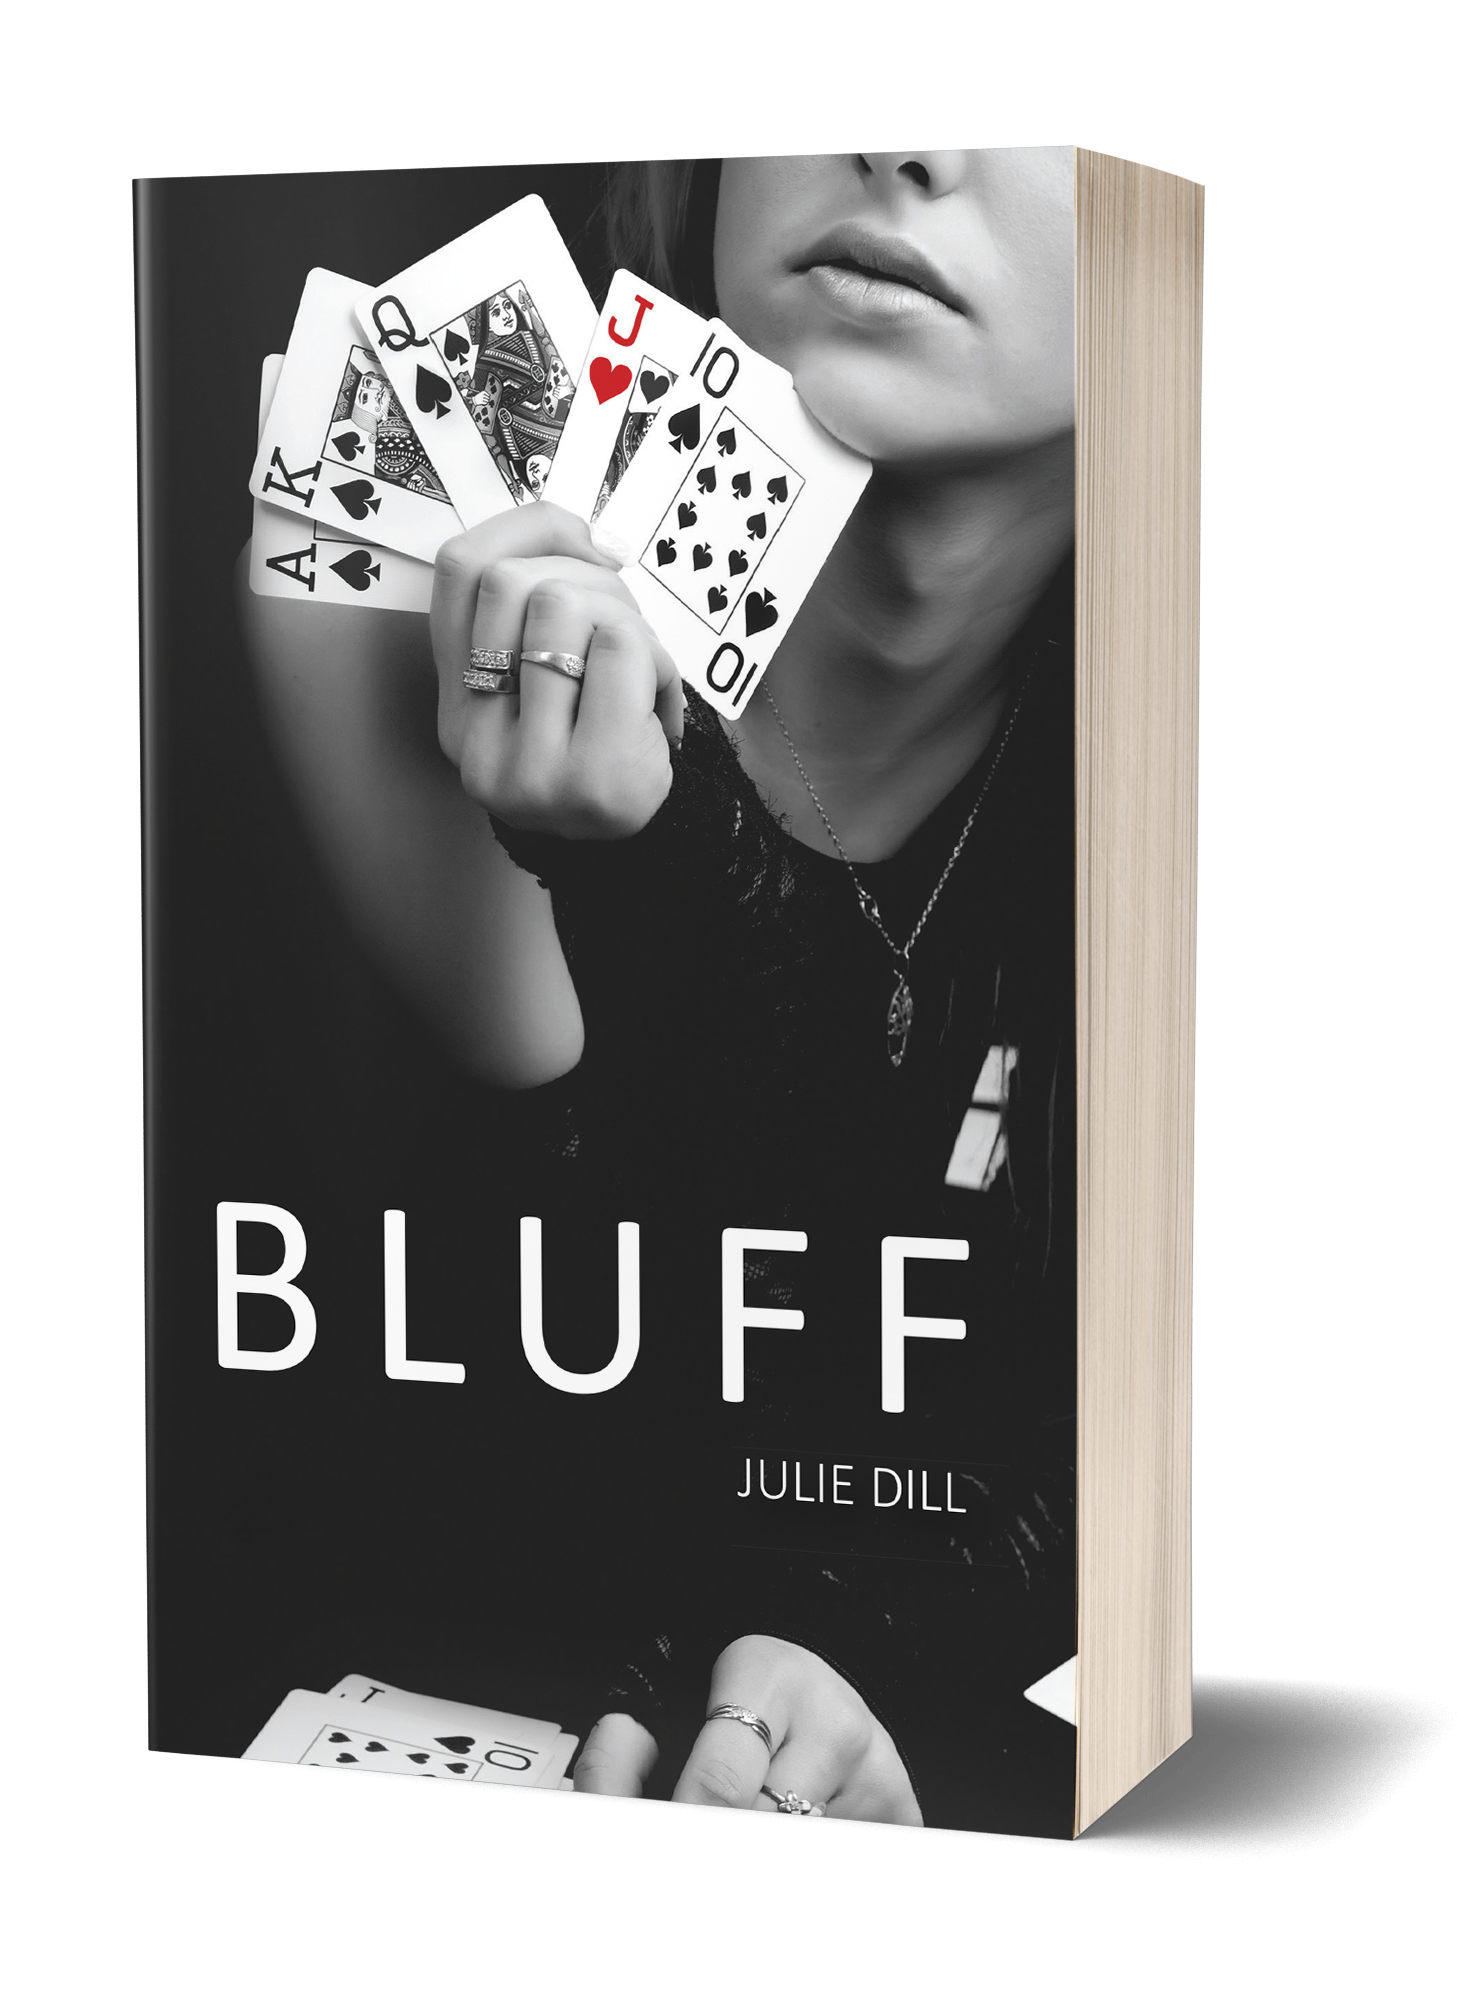 Bluff book cover, close up of a woman holding a hand of cards, black and white except for the jack